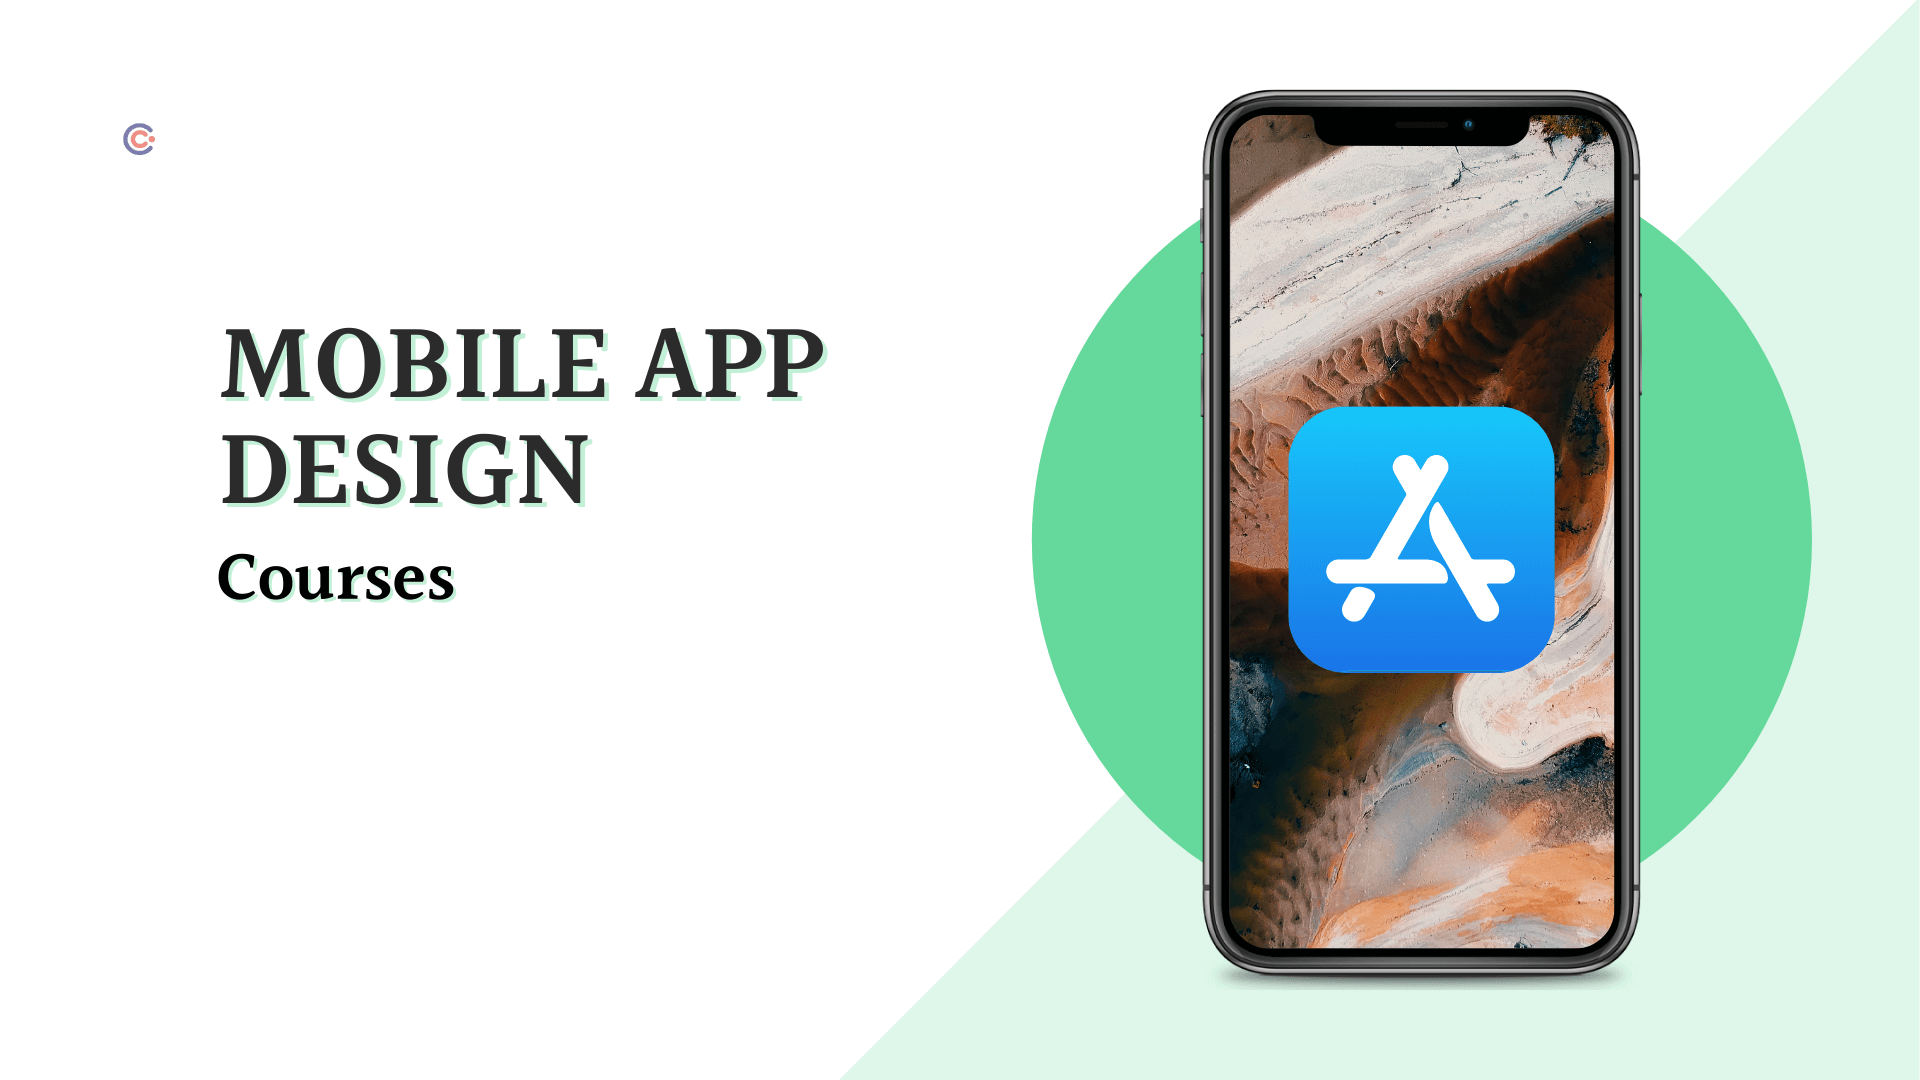 7 Best Mobile App Design Courses - Learn Mobile App Design Online